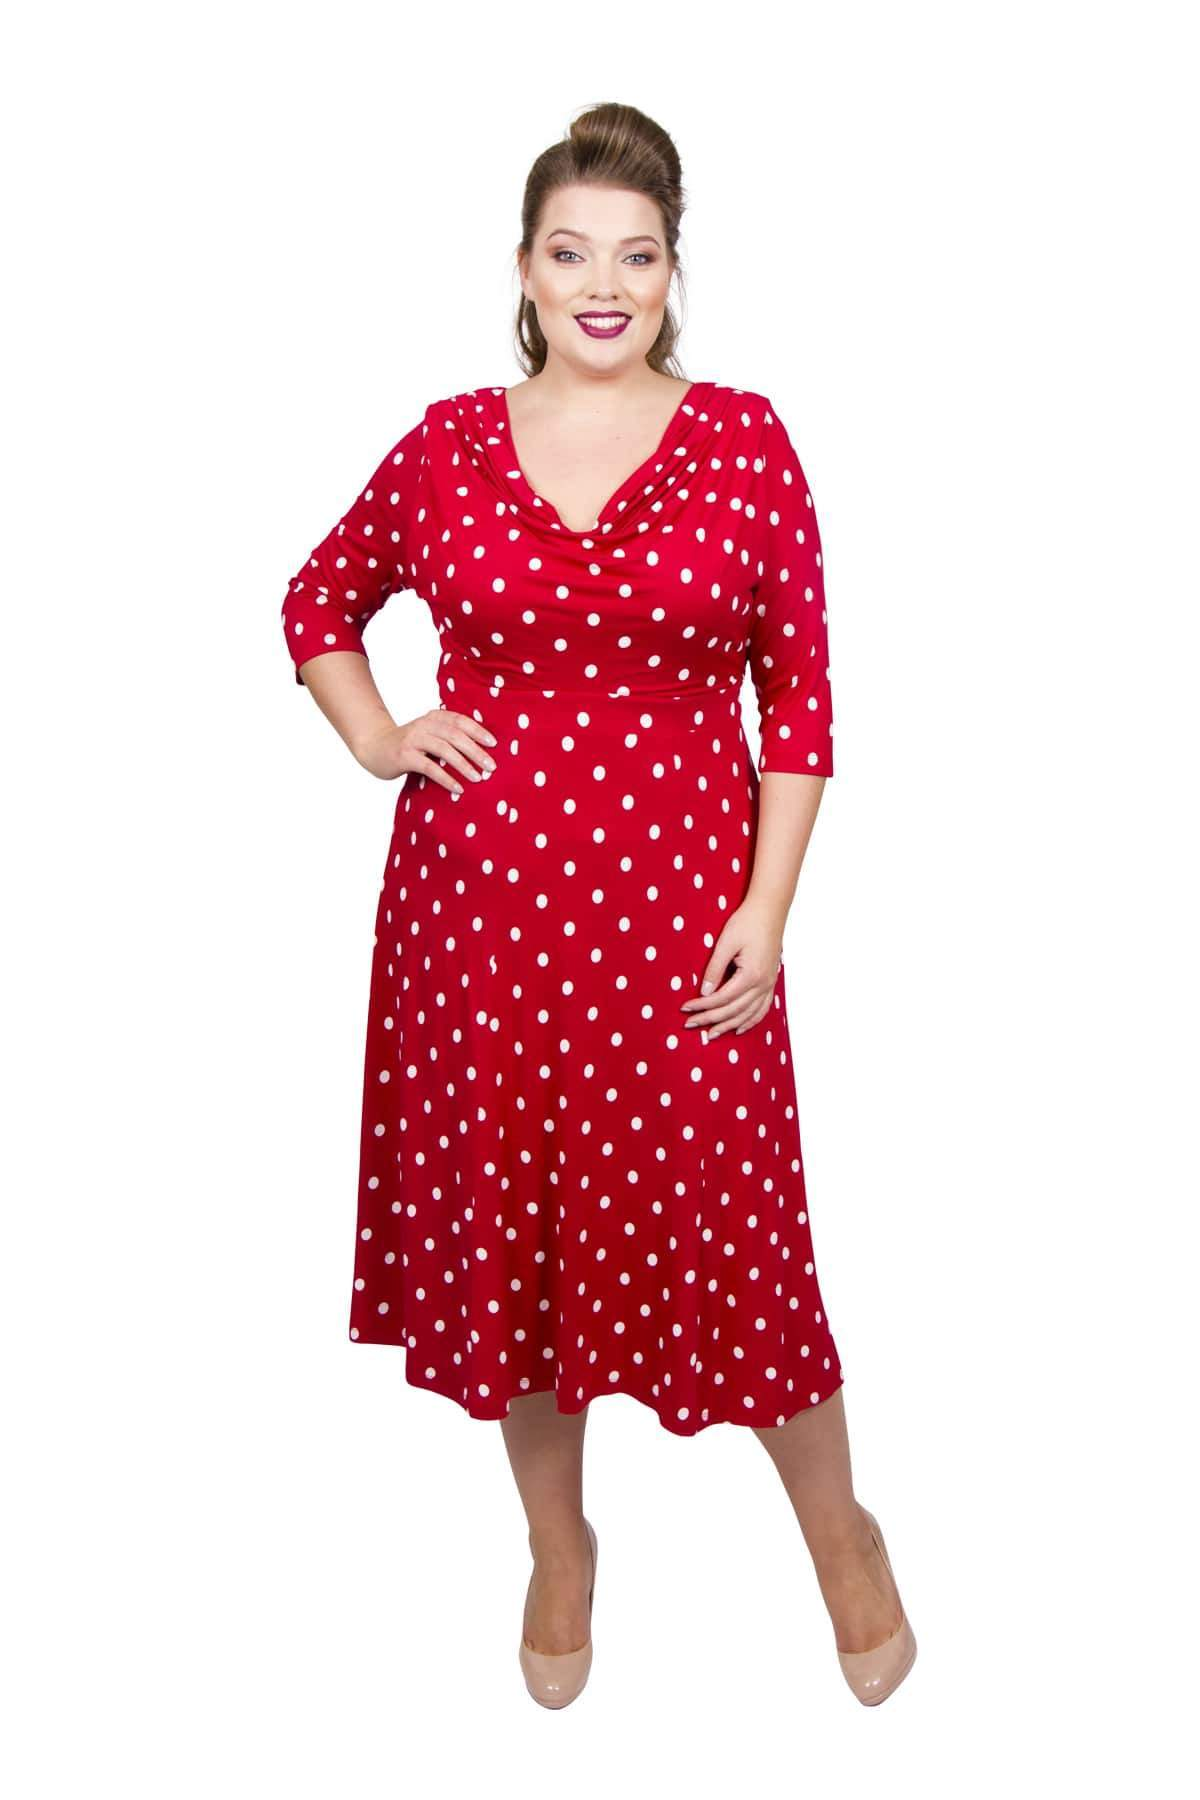 Swing Dance Clothing You Can Dance In Lollidot Cowl Neck 40s Dress - SCARLETWHI  12 £60.00 AT vintagedancer.com